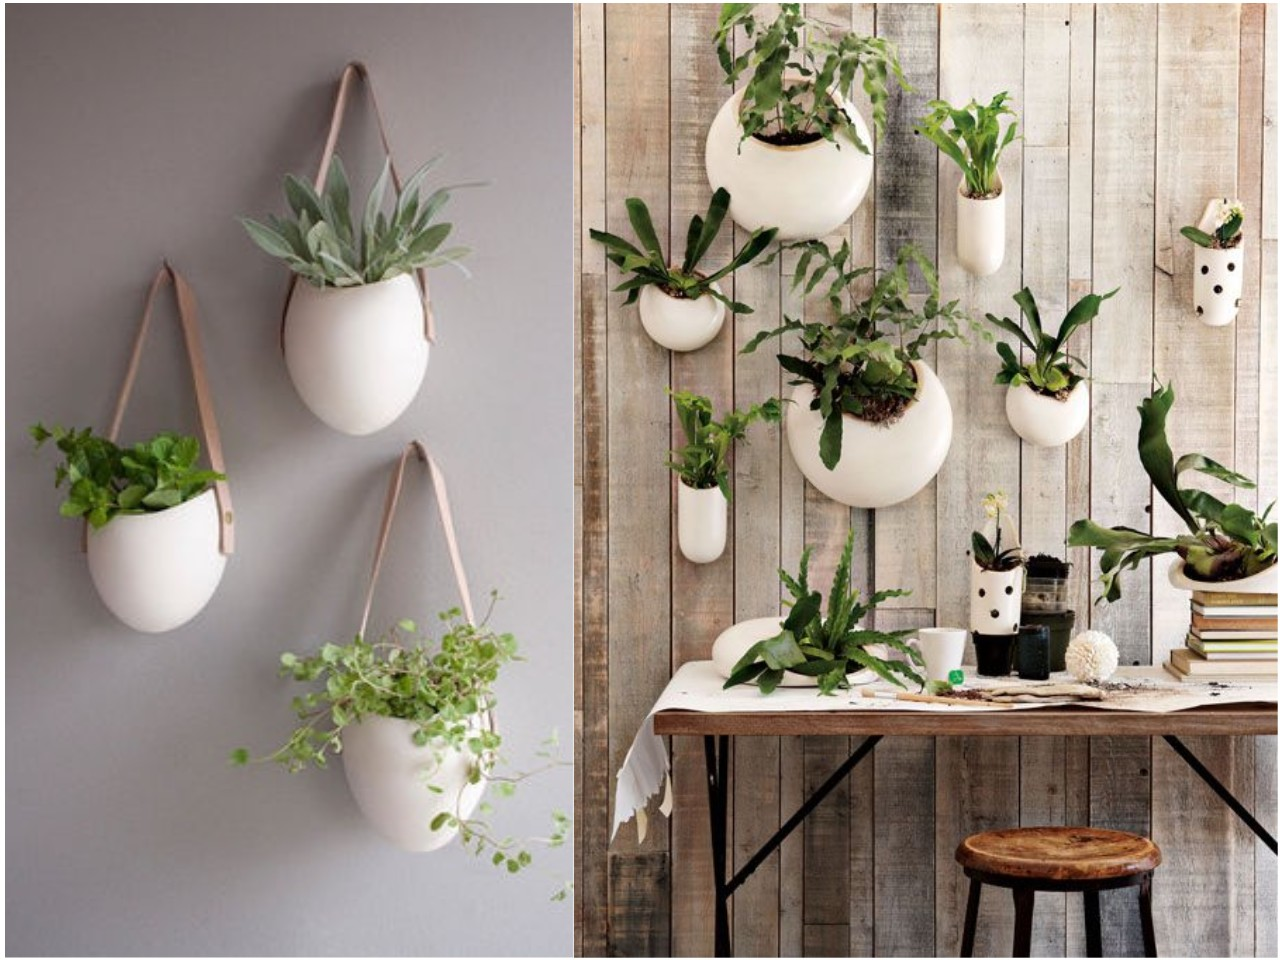 10 ideas de decoraci n con plantas colgantes for Plantas de interior para colgar